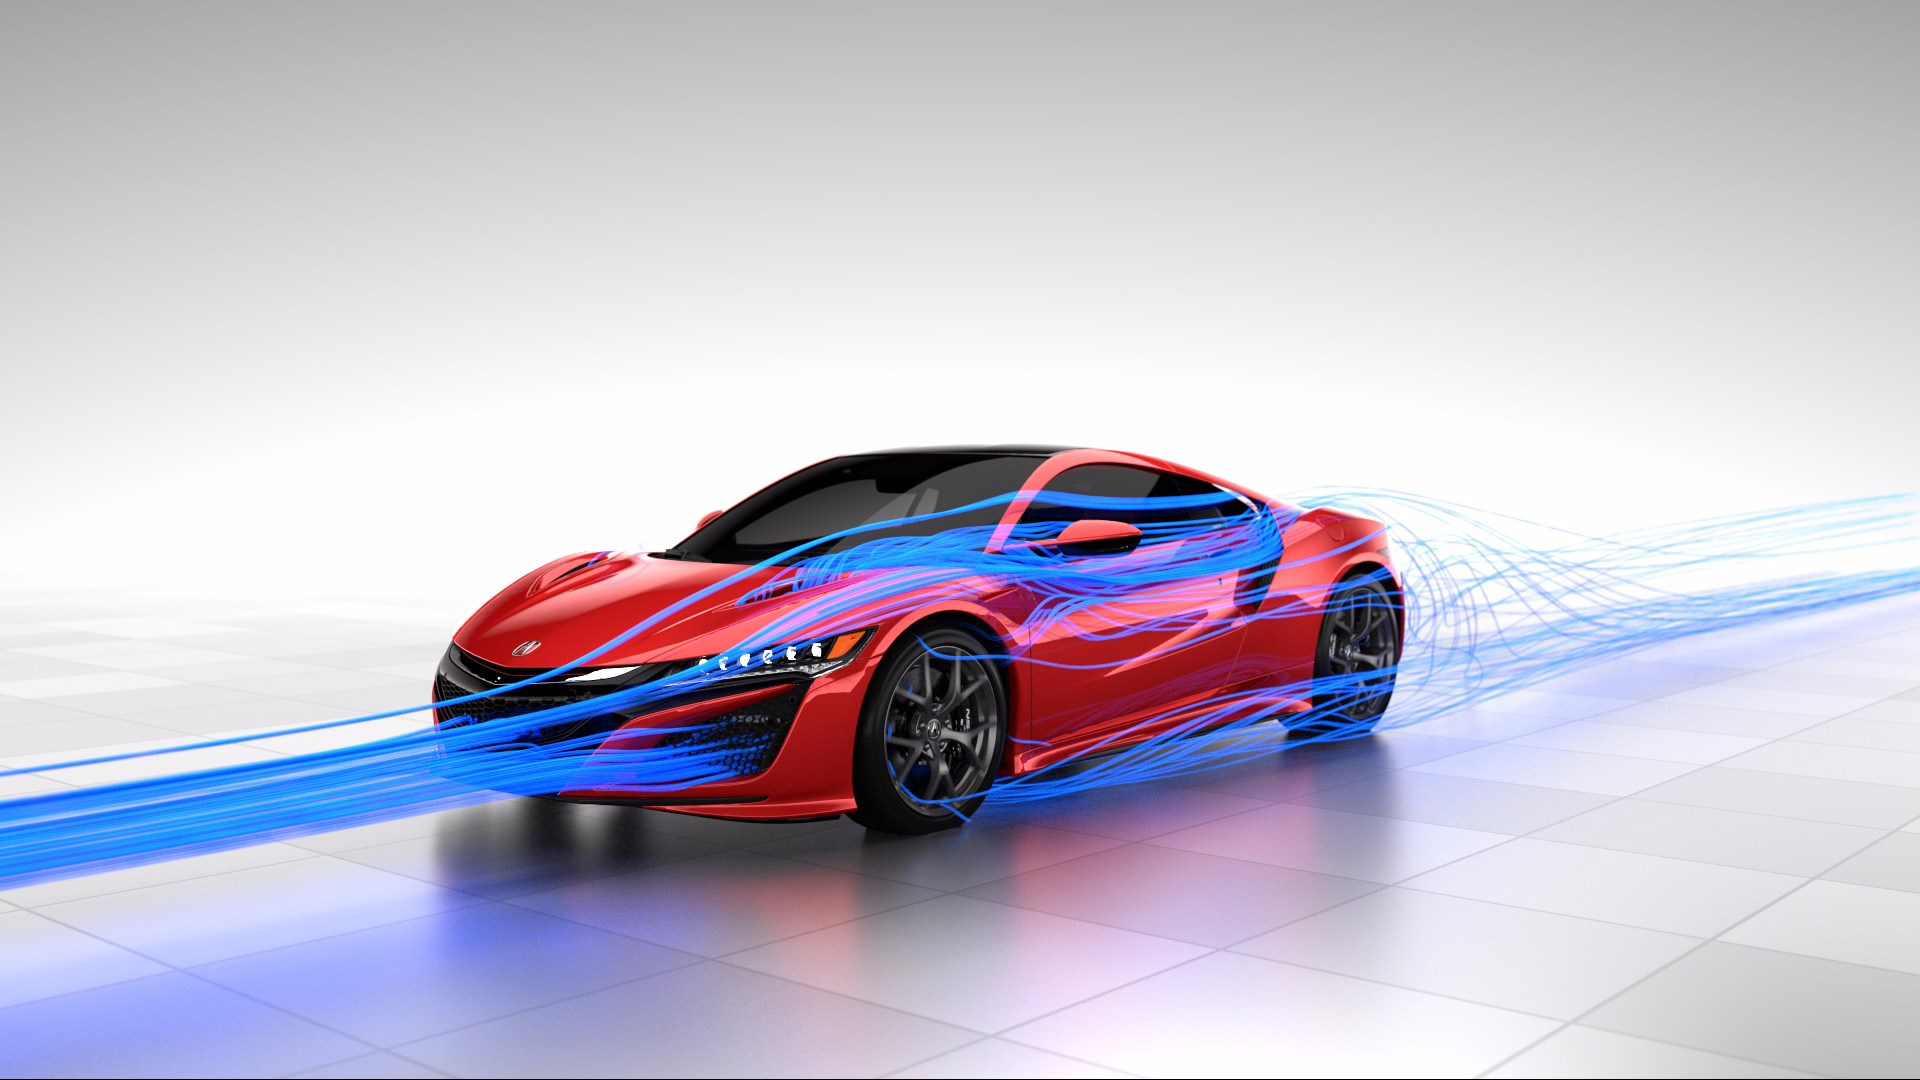 Honda Acura NSX - 2017 - Total Airflow Management - front aero design